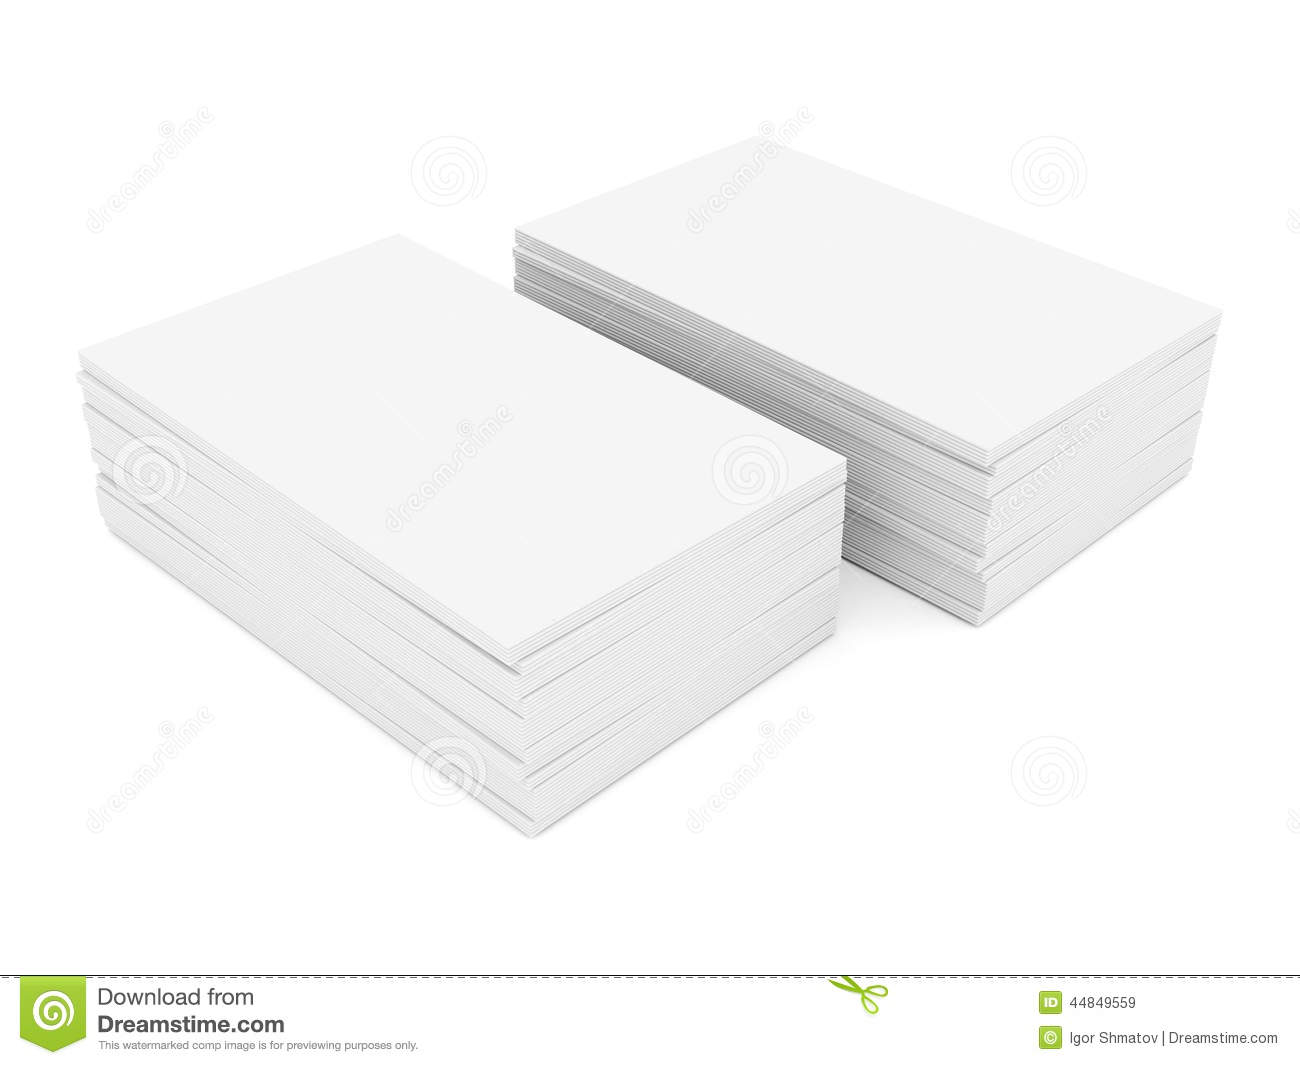 Business cards blank stock illustration illustration of note 44849559 download business cards blank stock illustration illustration of note 44849559 reheart Image collections